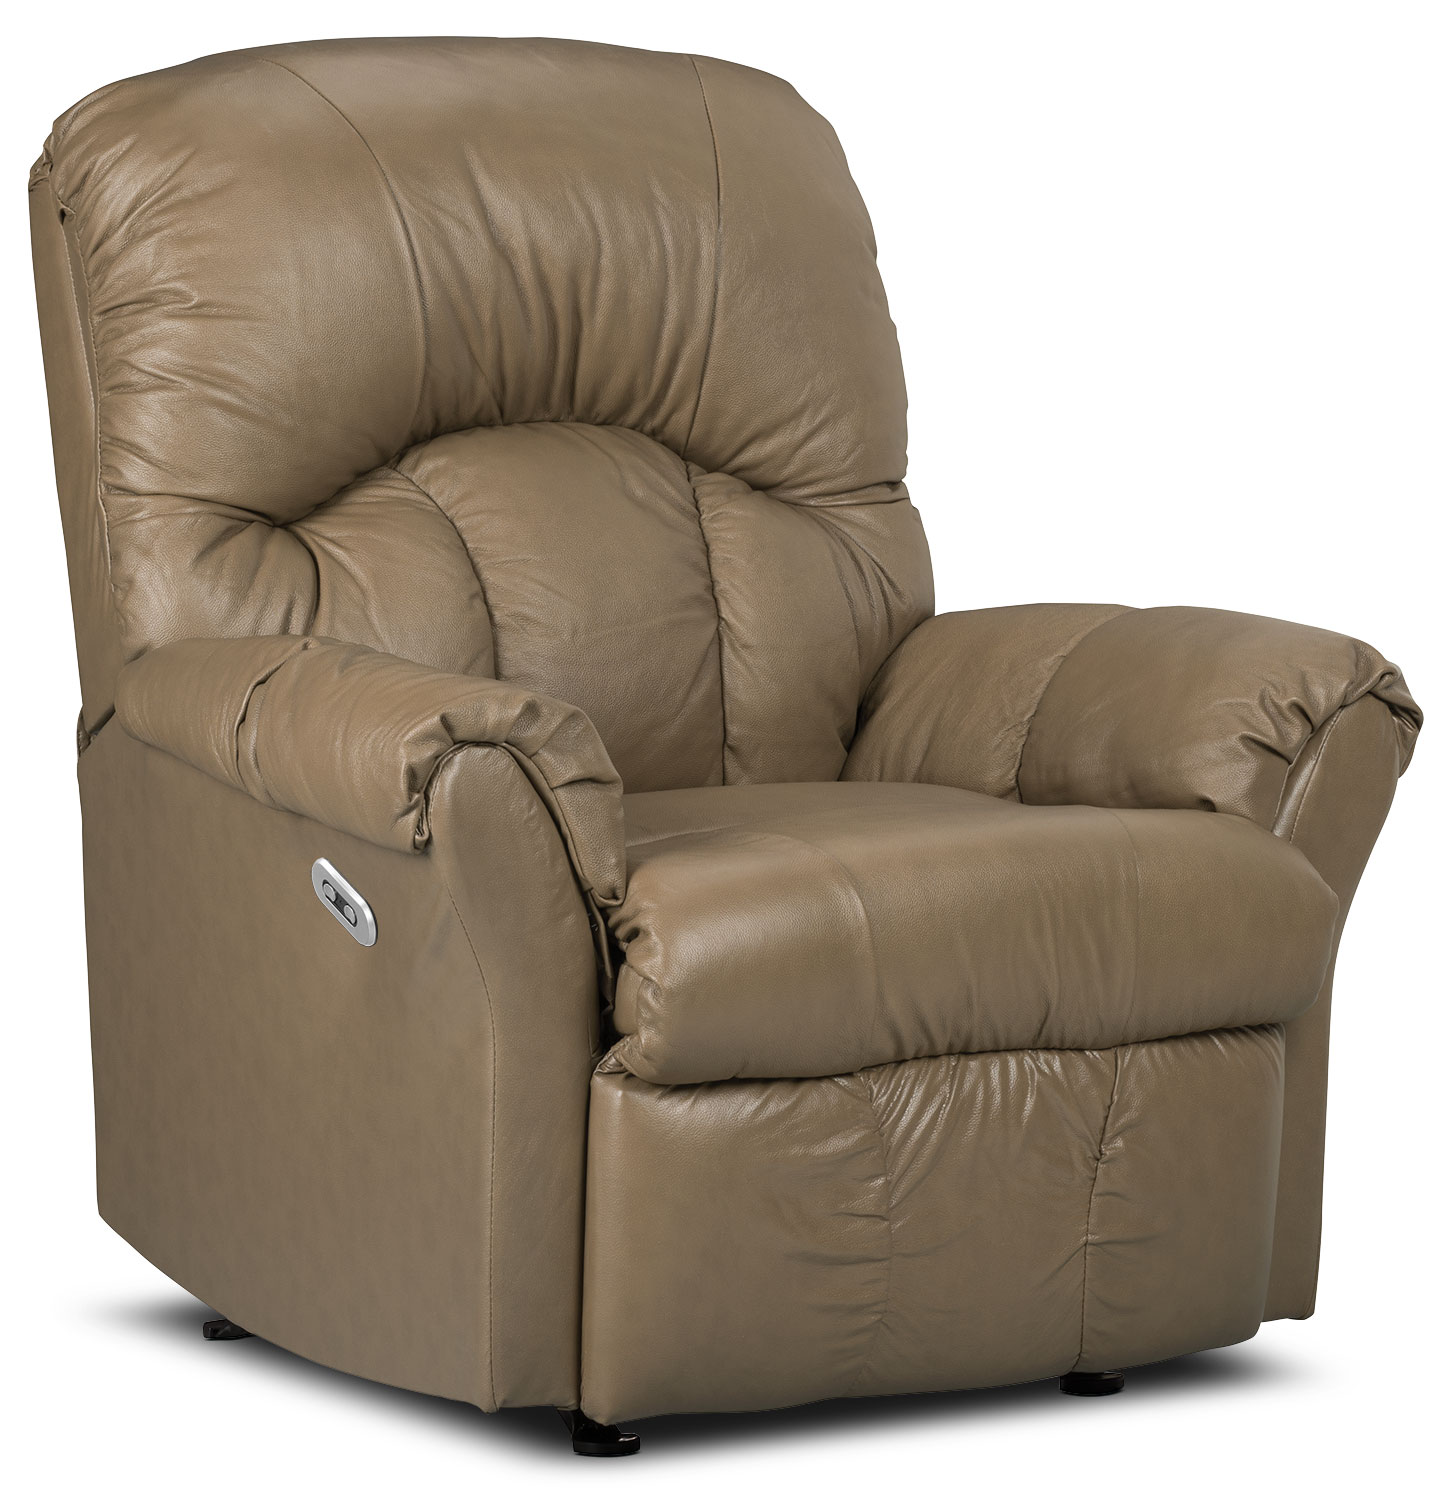 Designed2B Recliner 6734 Genuine Leather Power Recliner Chair - Buff